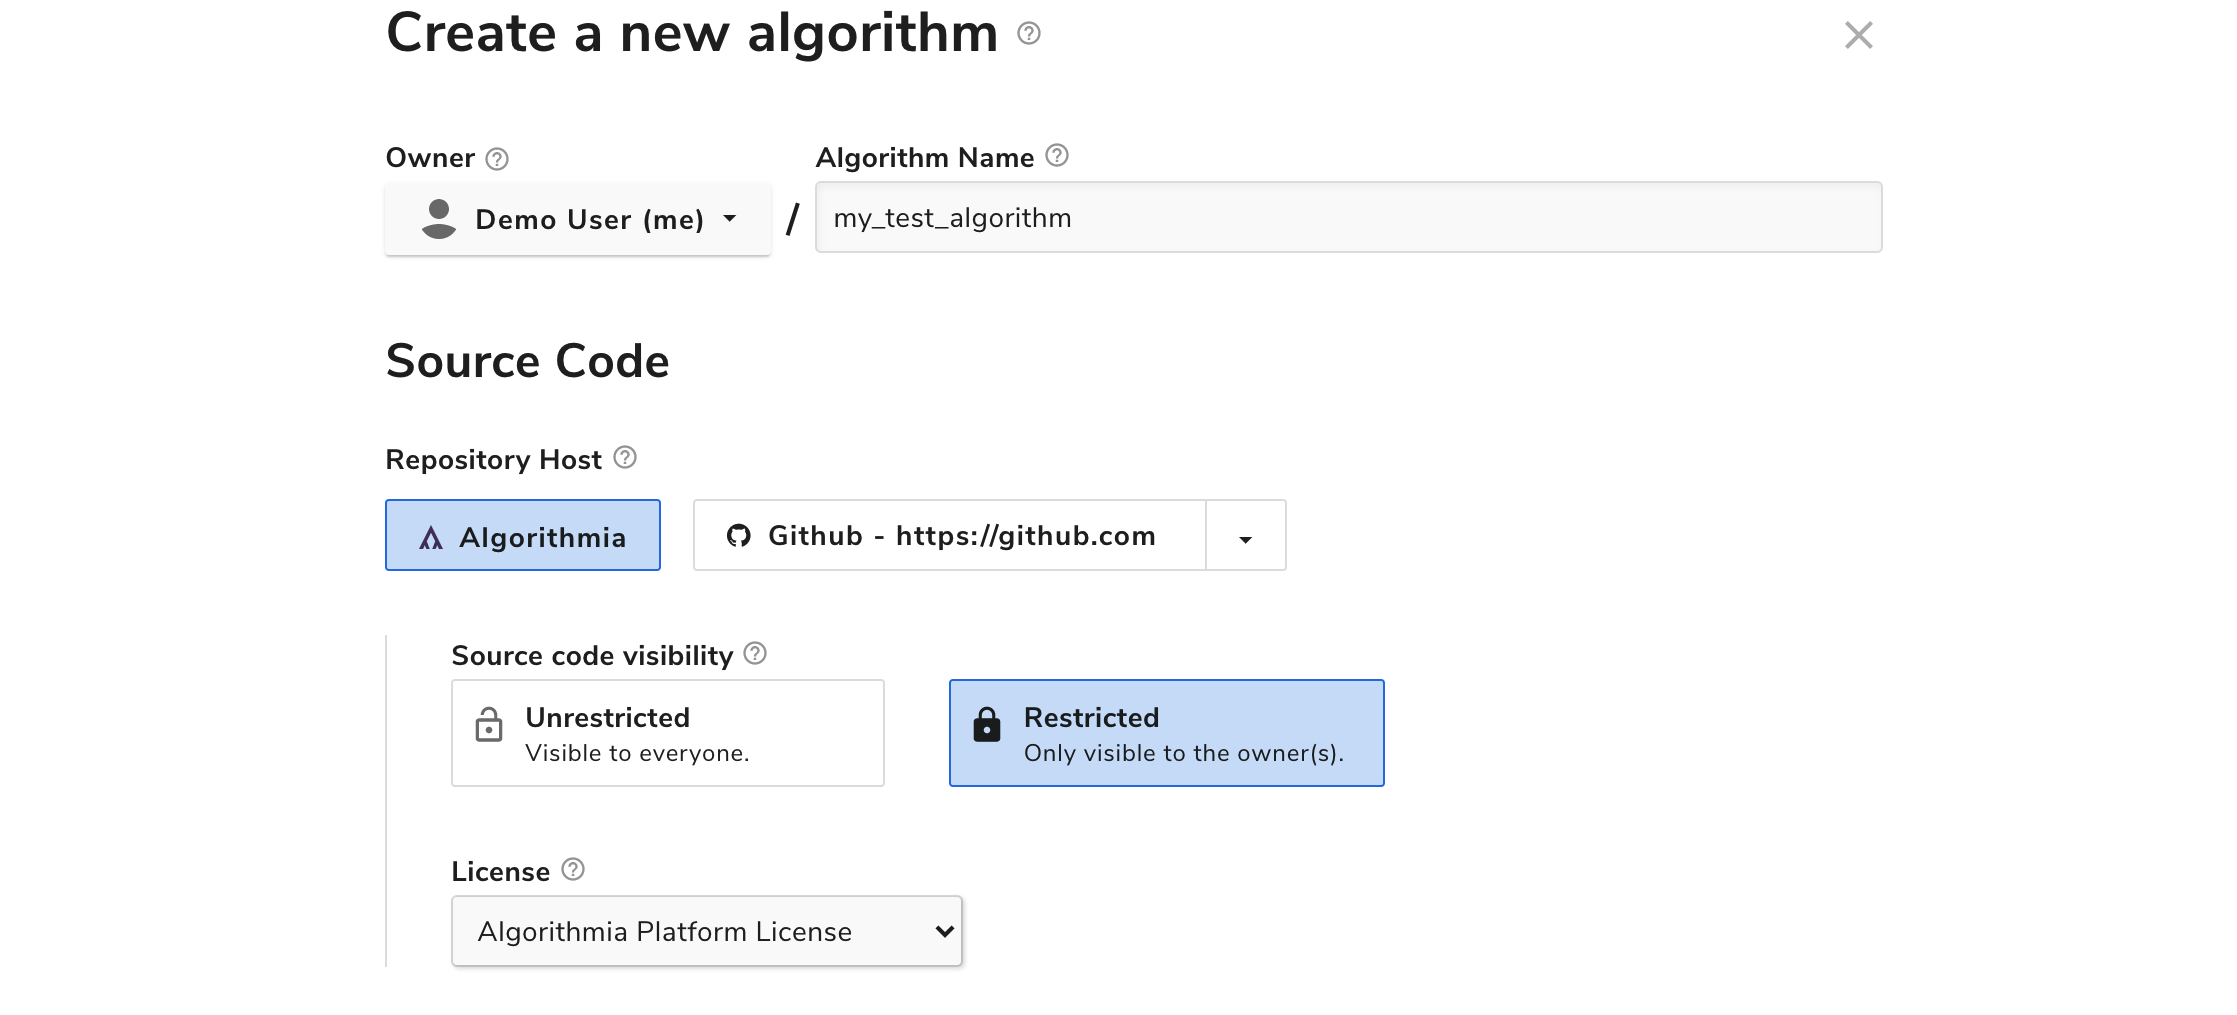 Creating an algorithm with the Algorithmia repository host